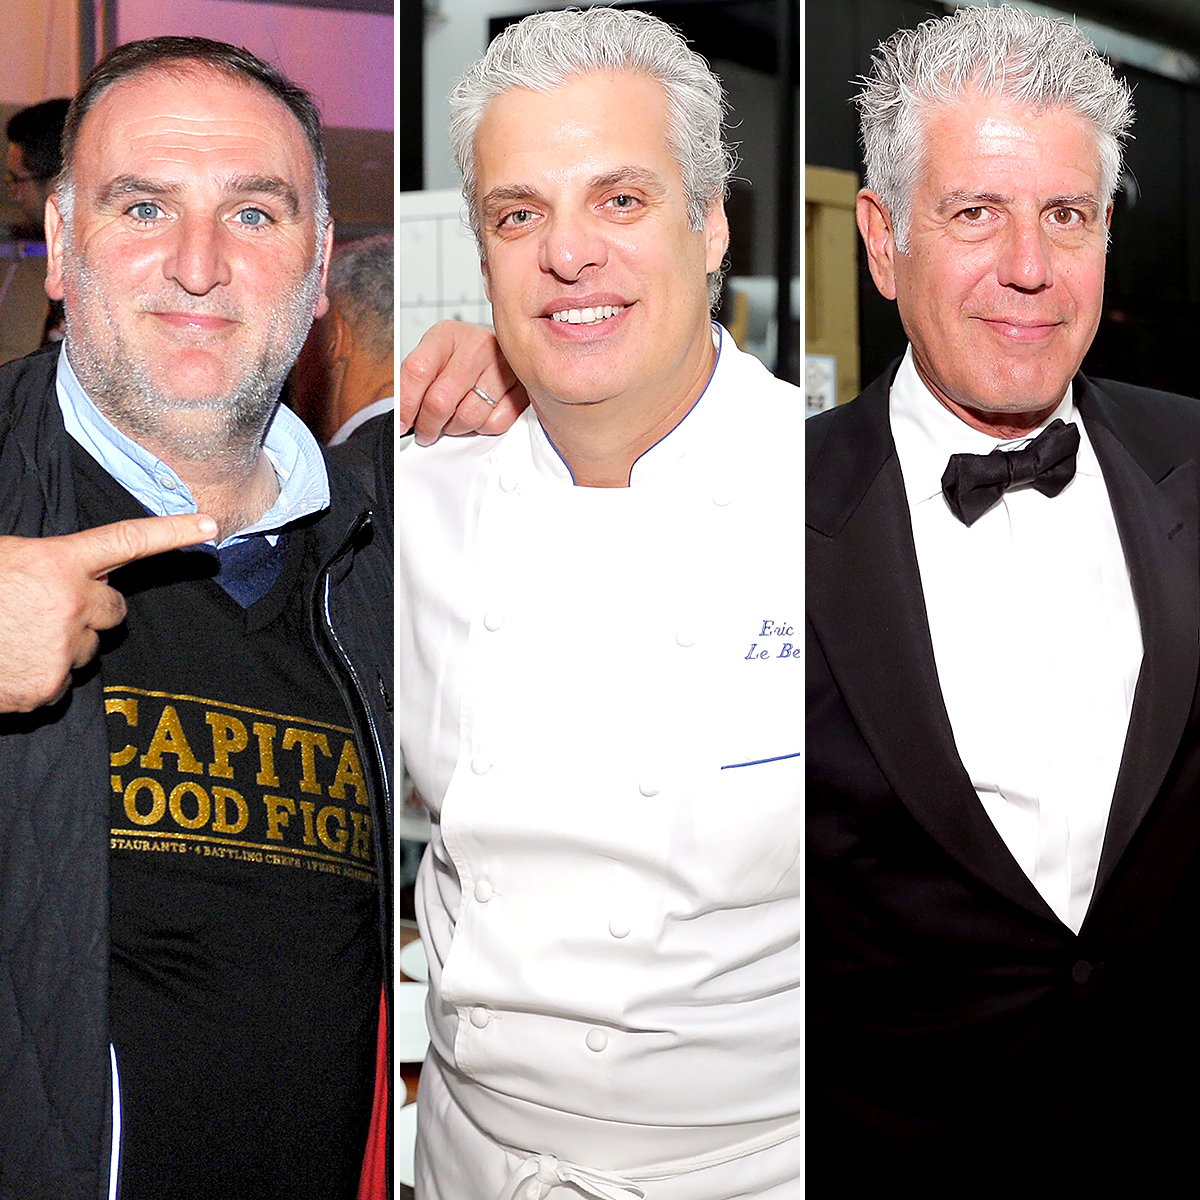 Jose-Andres,-Eric-Ripert-to-Honor-Late-Anthony-Bourdain-With-#BourdainDay